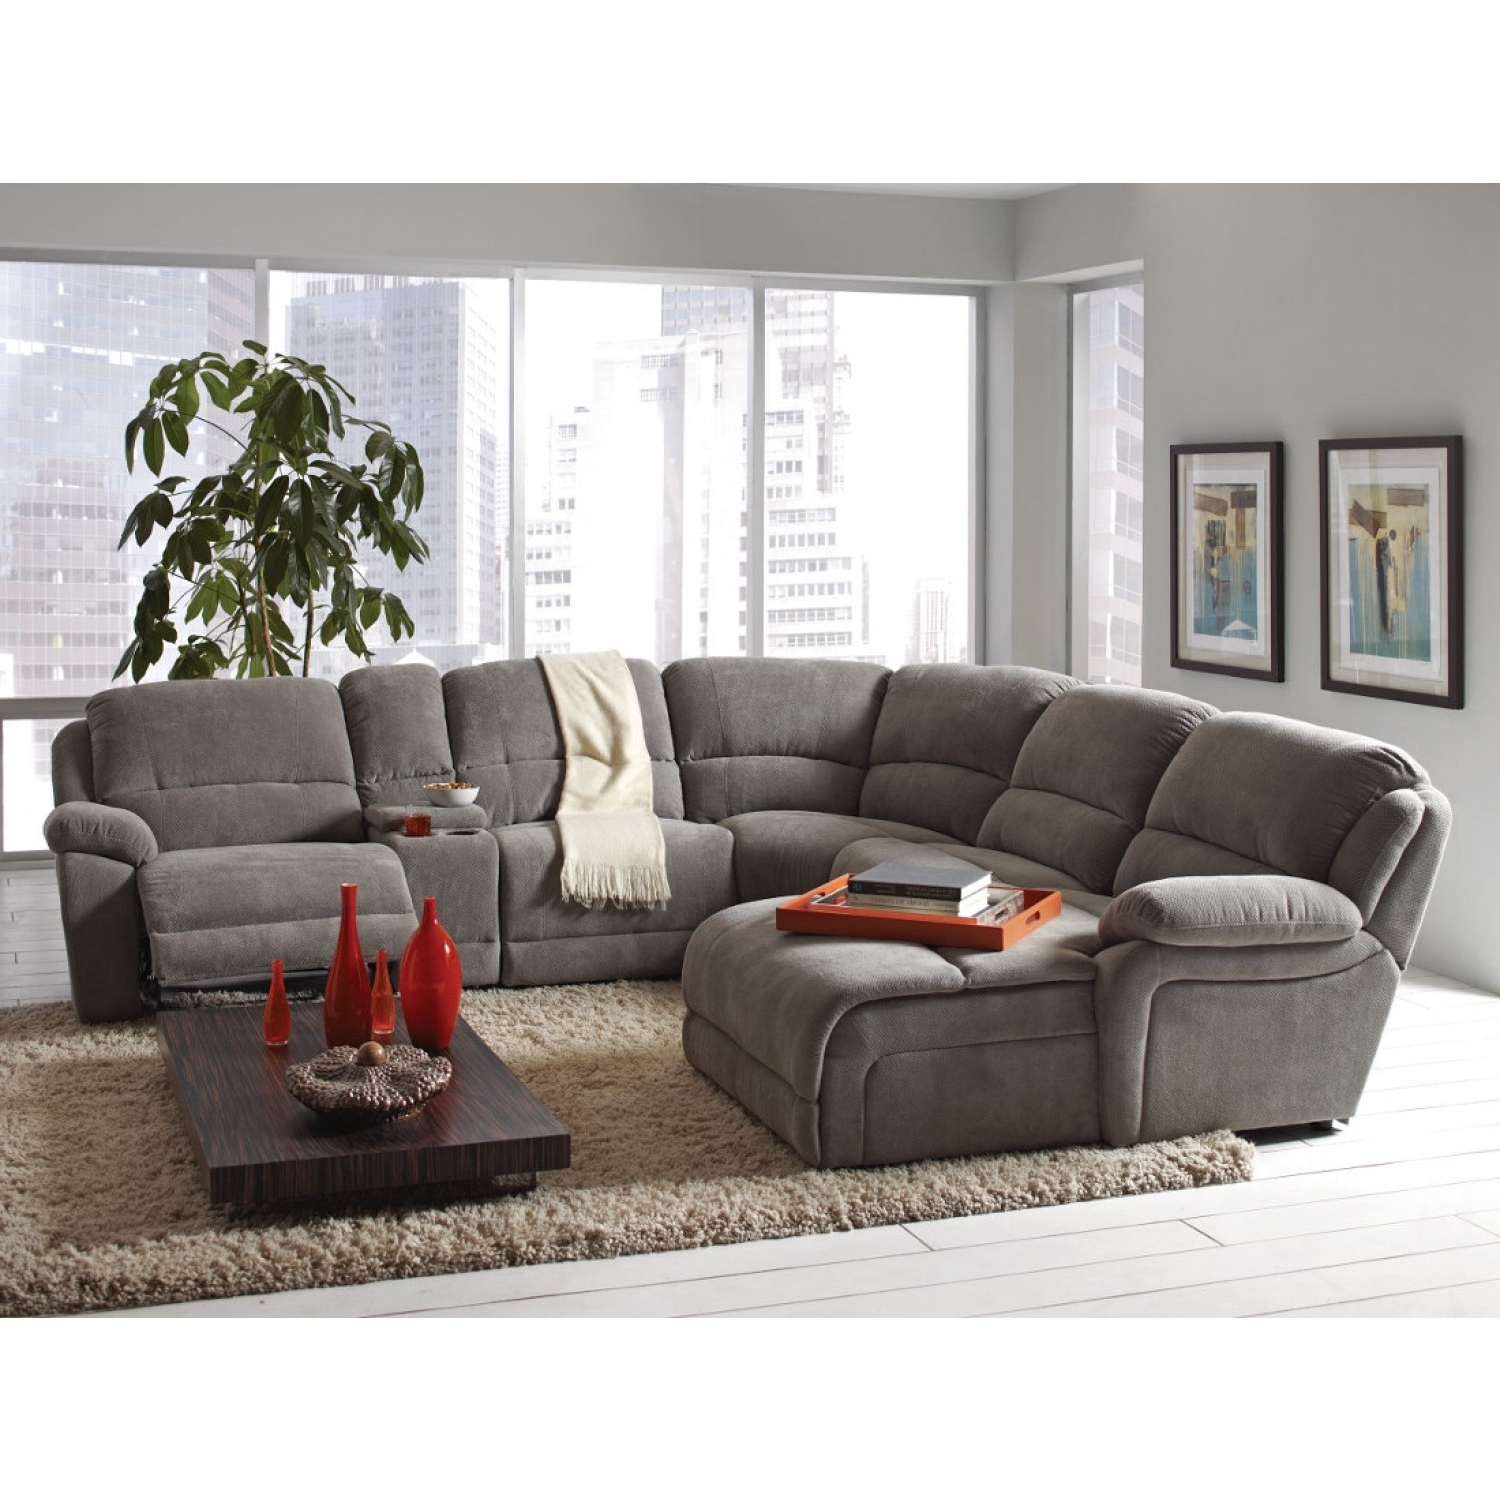 Most Recent Fabric Sectional Sofas Inside Coaster Mackenzie Silver 6 Piece Reclining Sectional Sofa With (View 16 of 20)